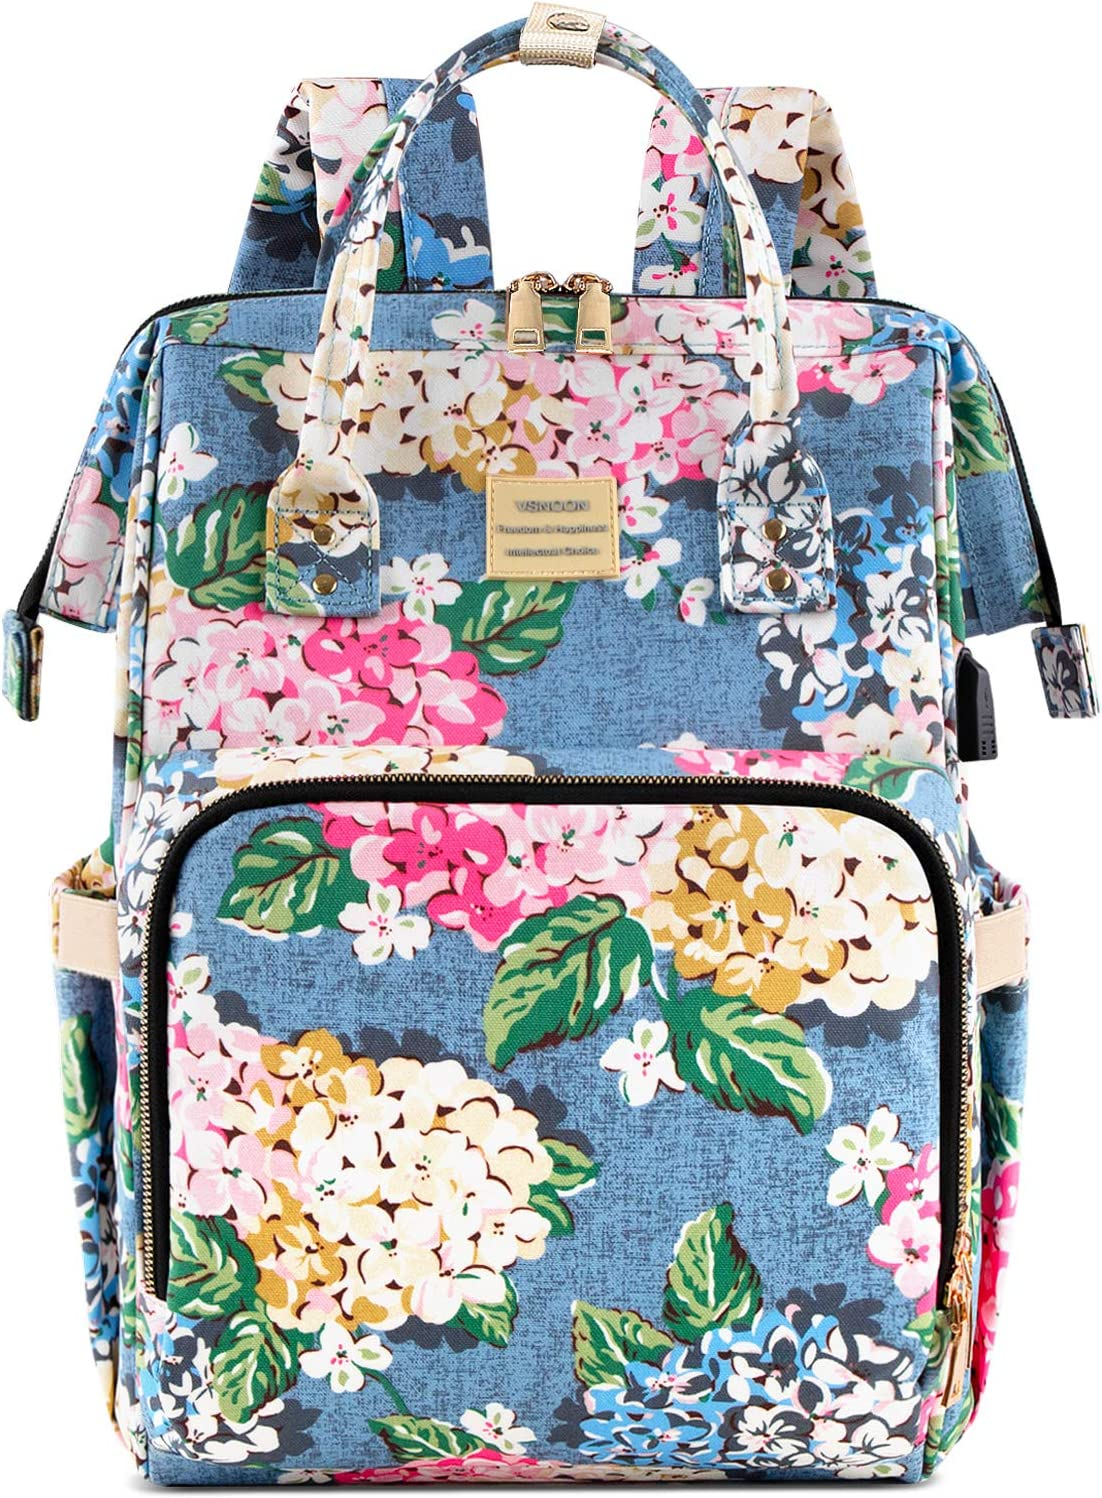 Laptop Backpack,15.6 Inch Stylish College School Backpack with USB Charging Port,Water Resistant Casual Daypack Laptop Backpack for Women/Girls/Business/Travel (Flower2)